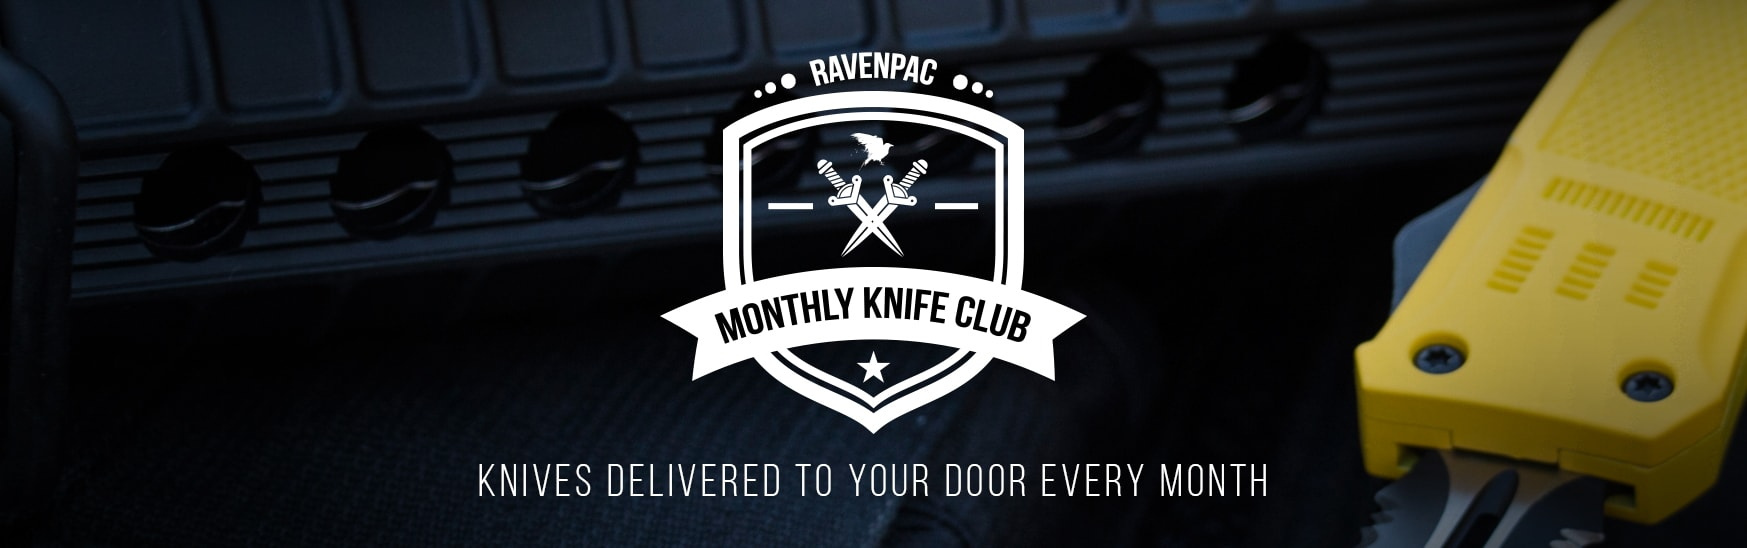 RavenPac - RavenCrest Tactical Monthly Knife Club